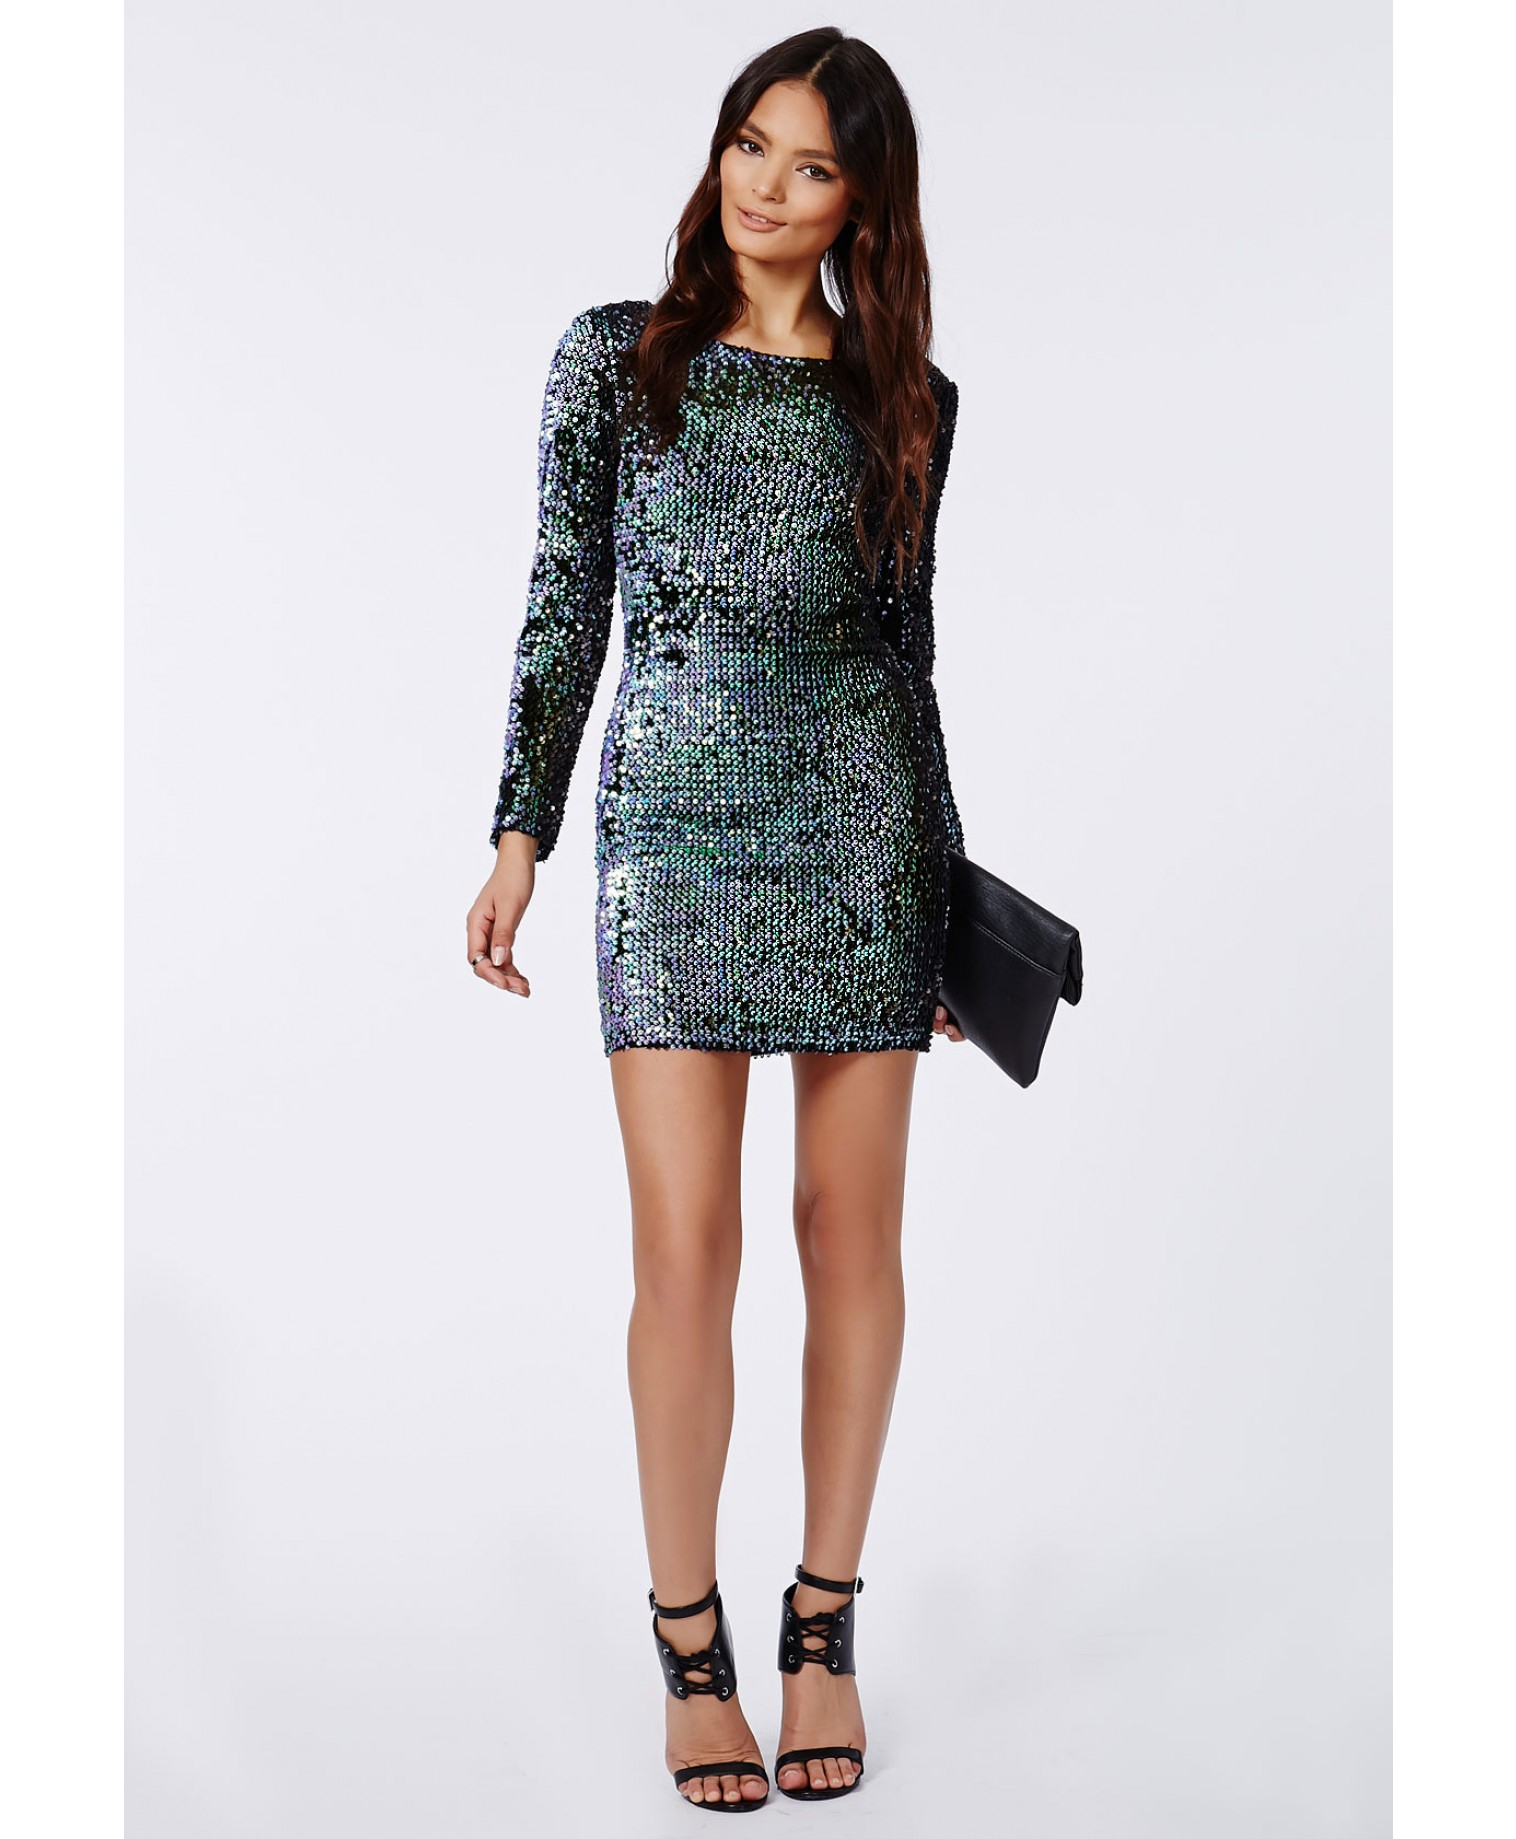 Lyst - Missguided Ivy Mermaid Sequin Long Sleeve Mini Dress Green in ... 4a625c489